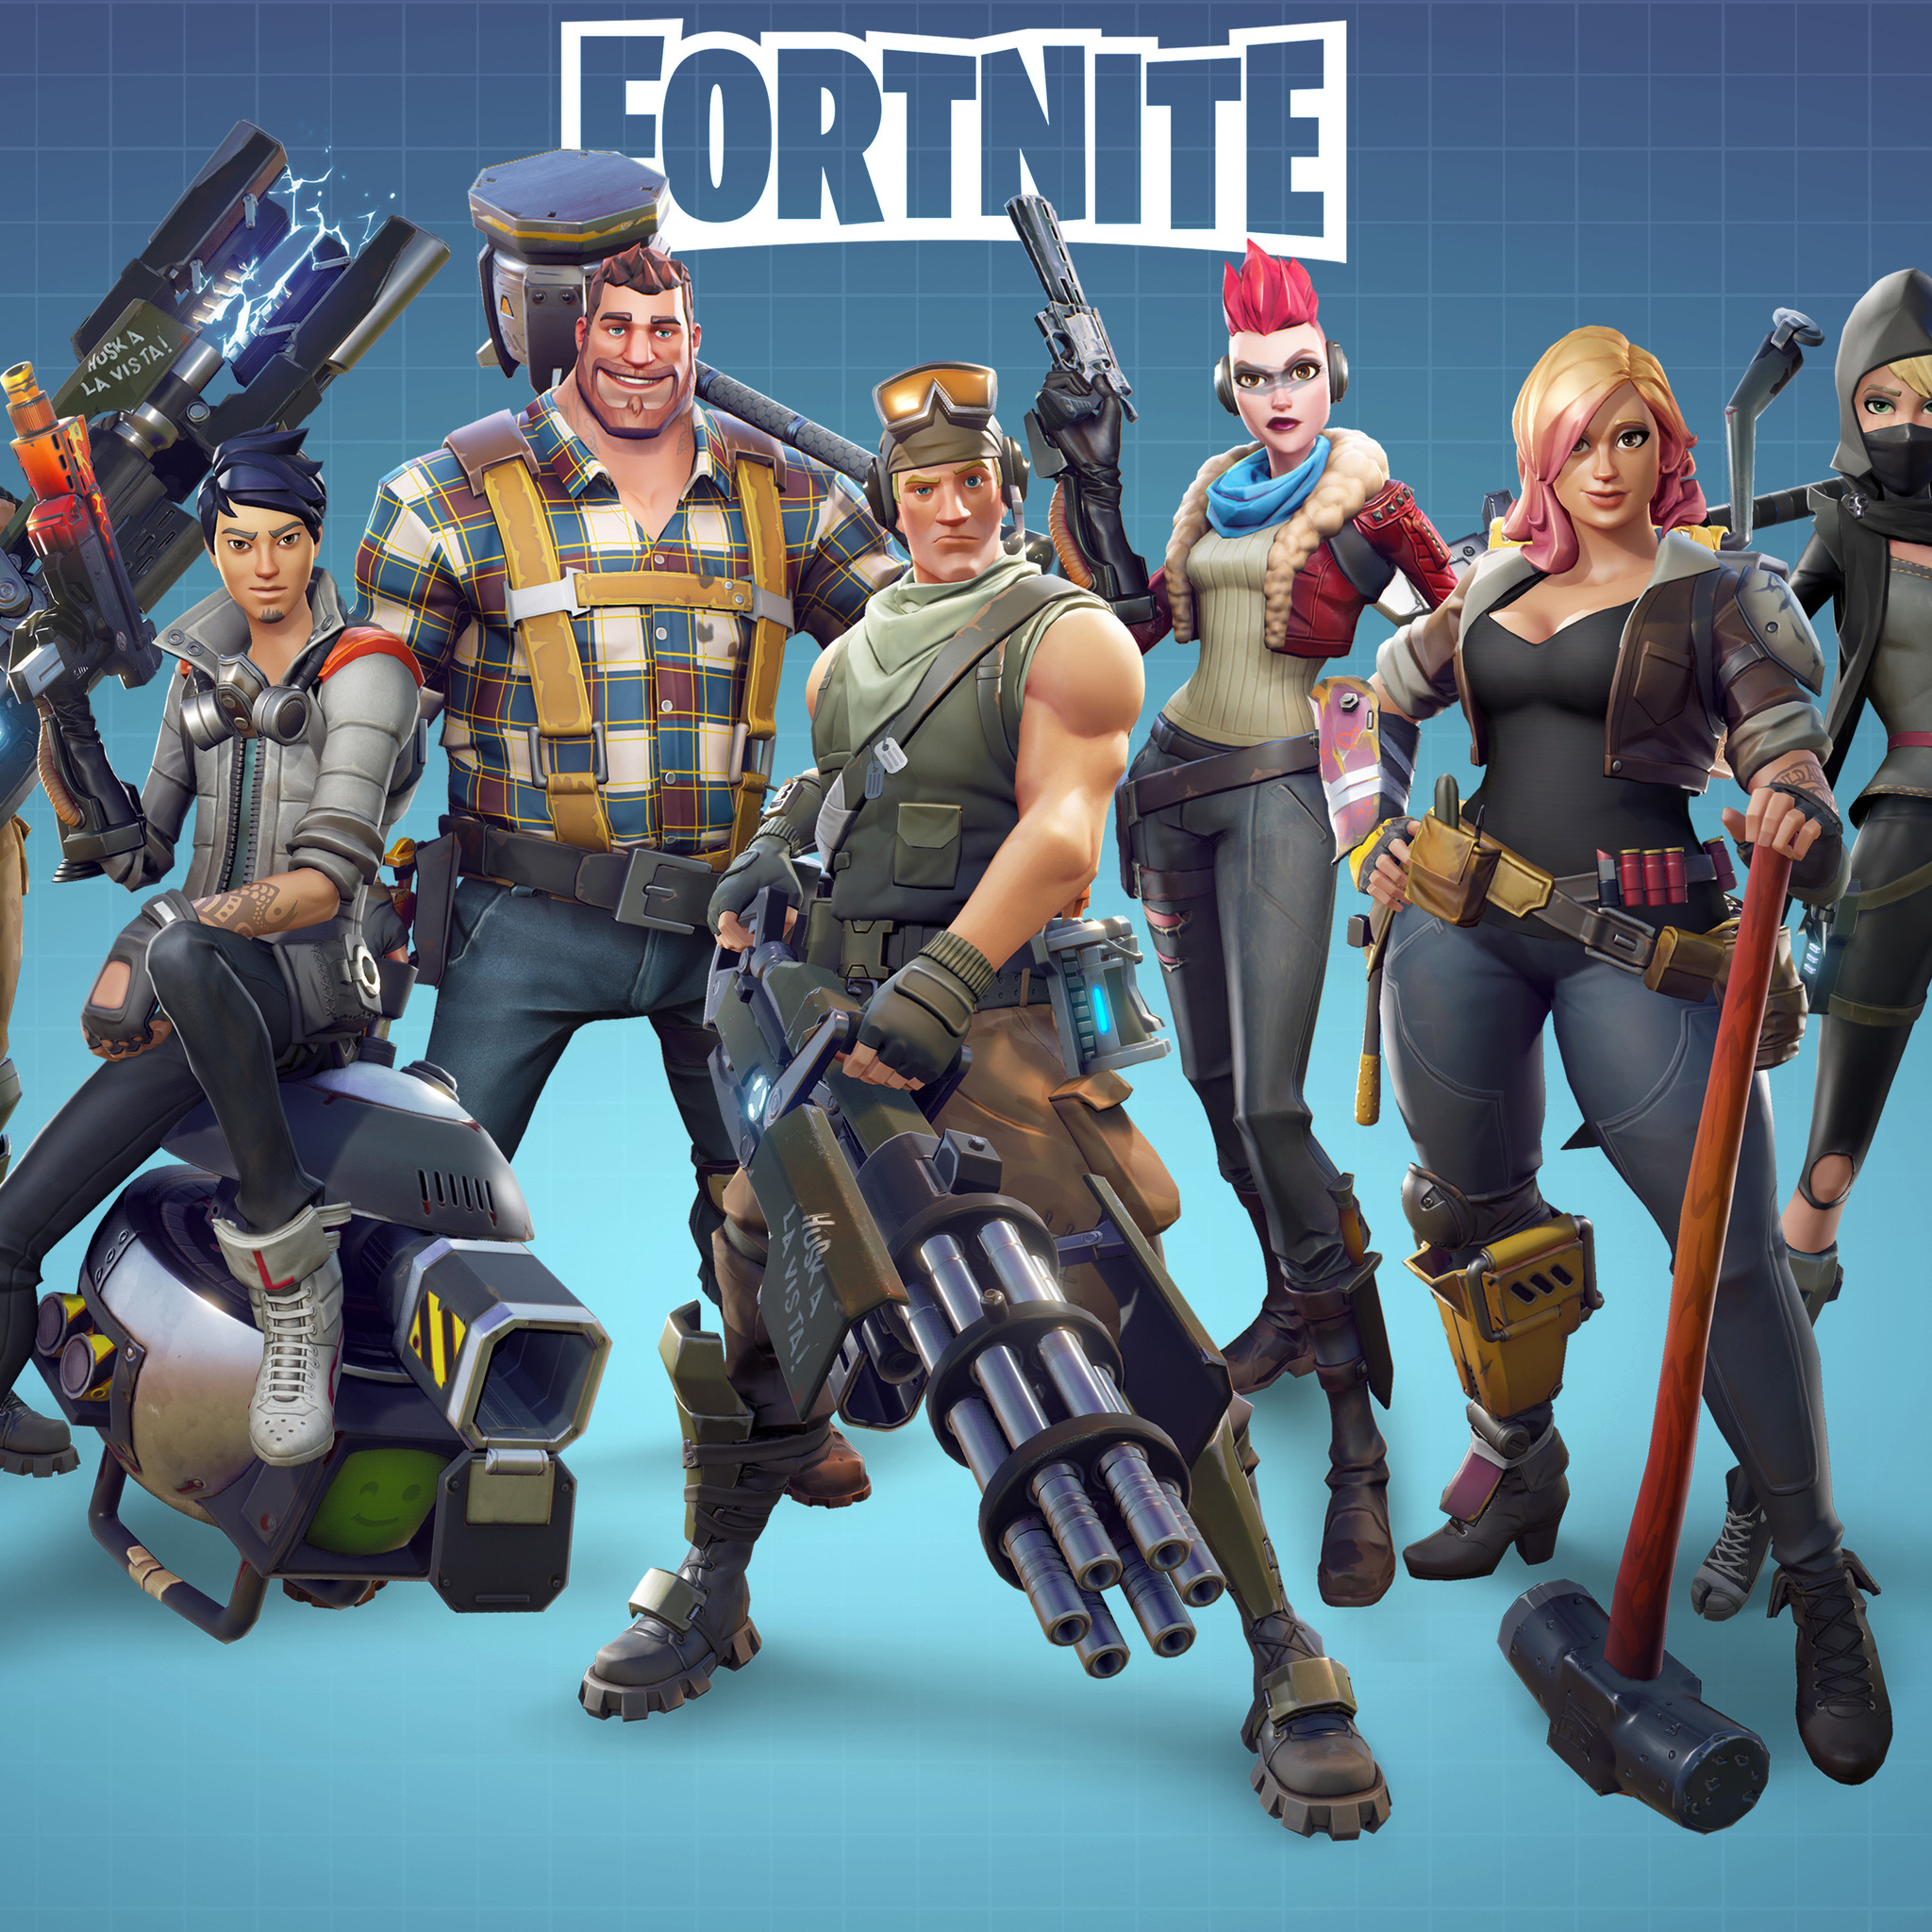 2048x2048 Fortnite 5k Ipad Air Hd 4k Wallpapers Images Backgrounds